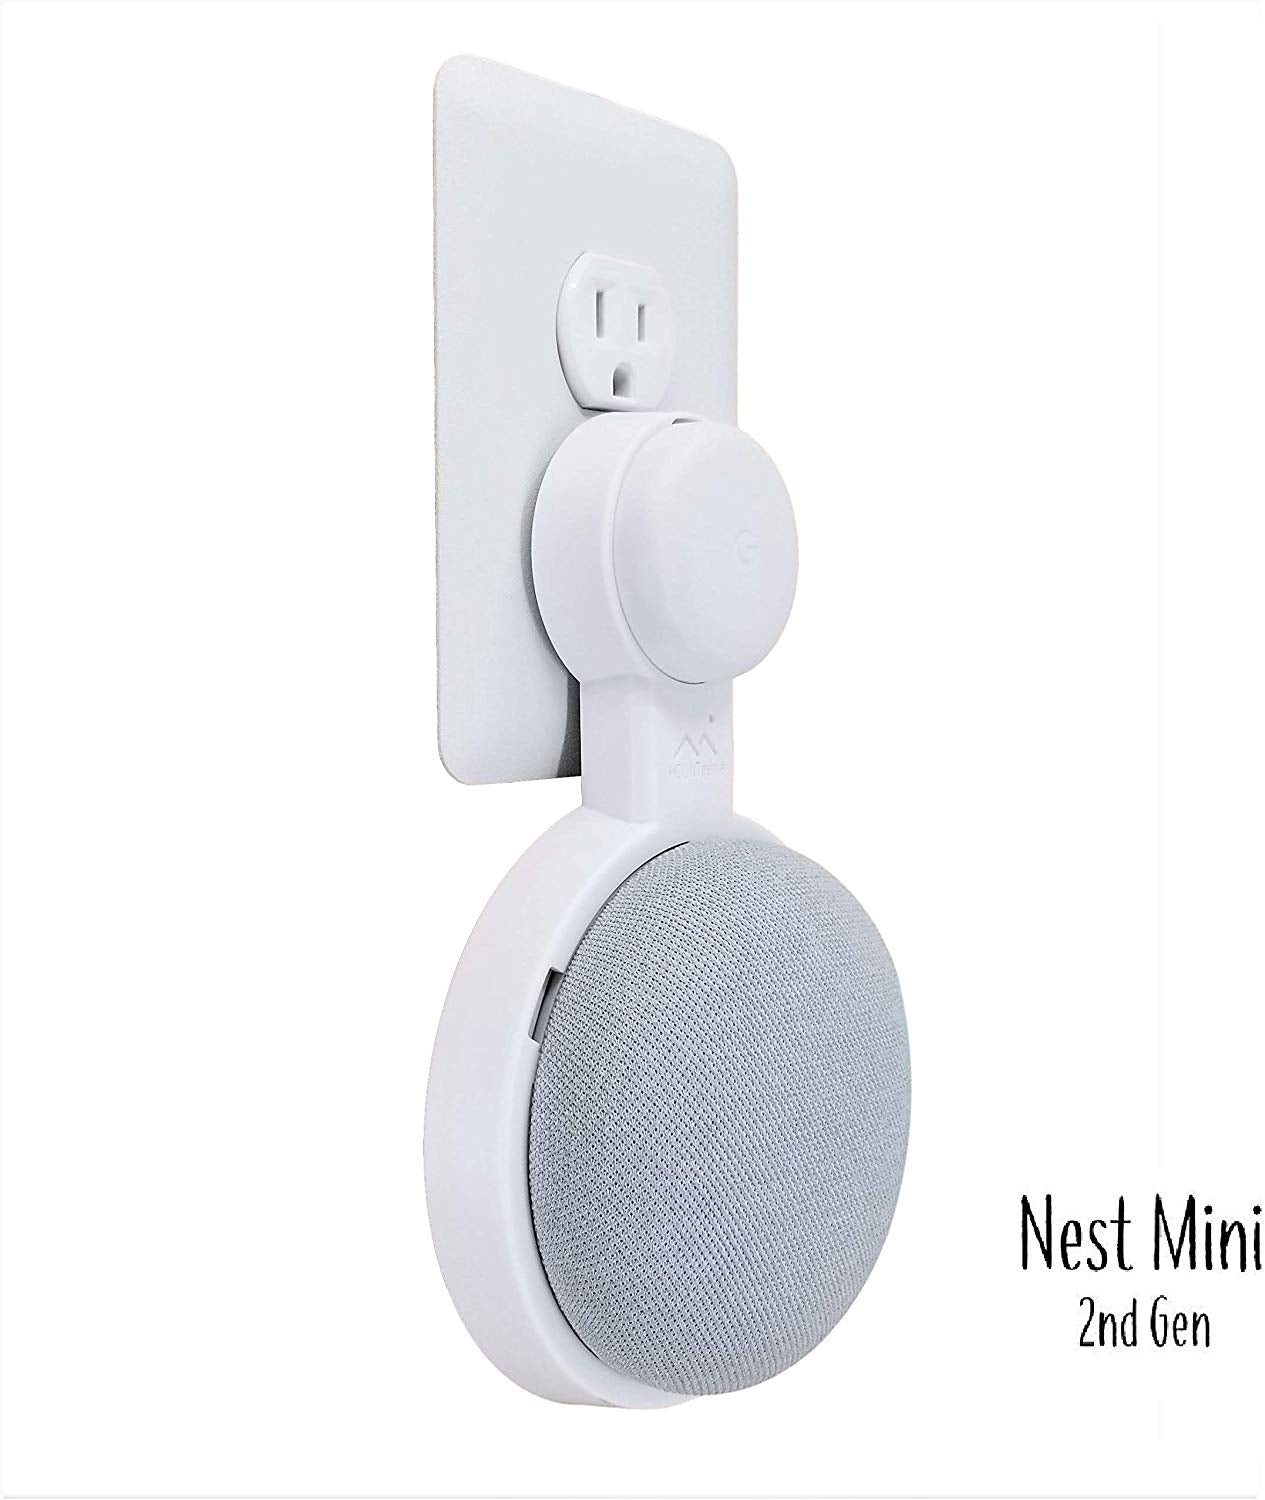 Silver Mount Genie Pedestal for Nest Mini 2nd Gen | Improves Sound and Appearance and Google Home Mini Cleanest Mount Holder Stand for Mini 1st Gen